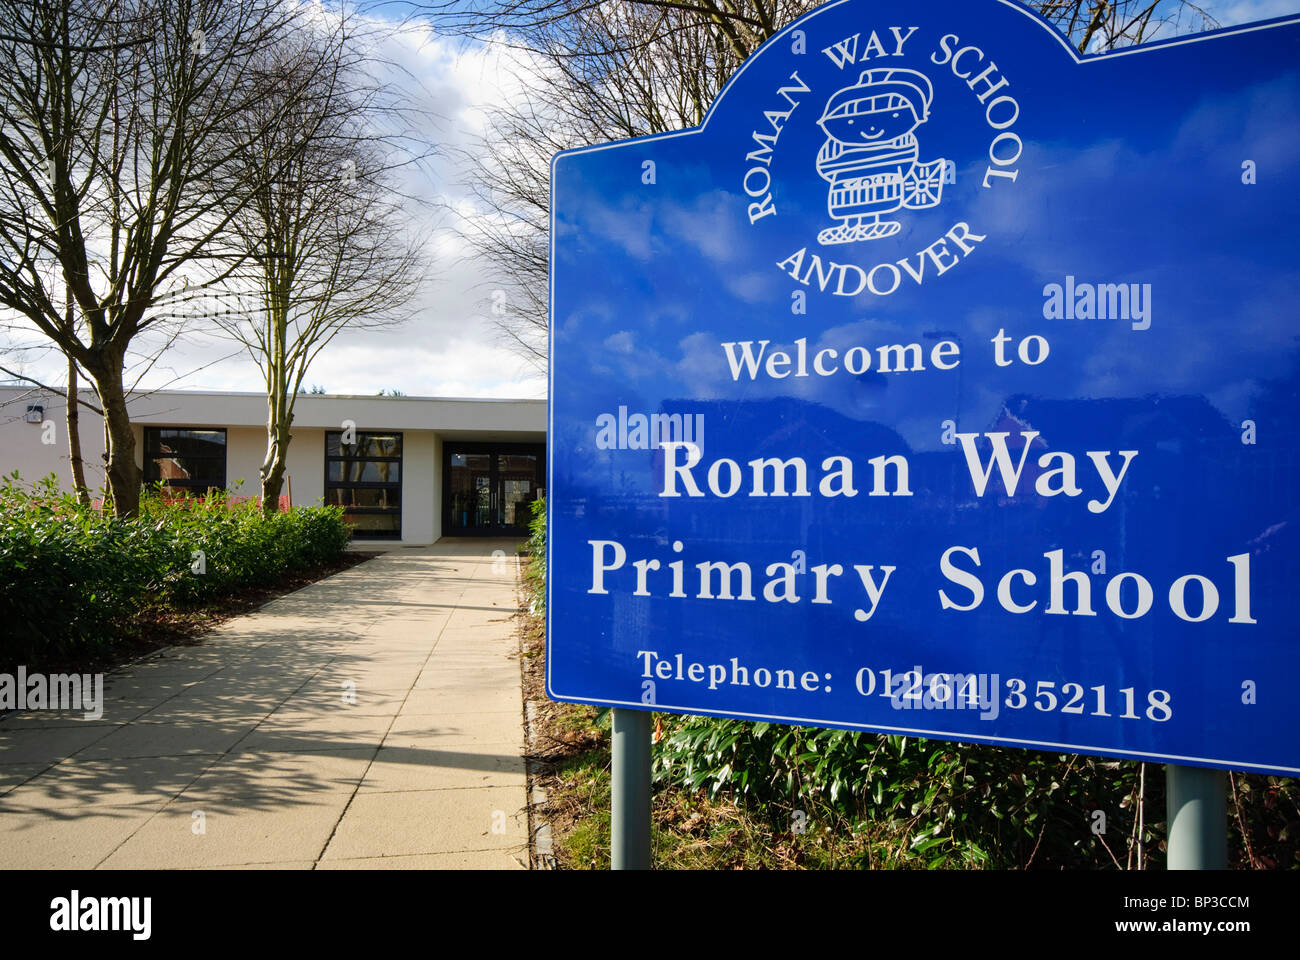 Roman Way Primary School Andover level access to entrance - Stock Image